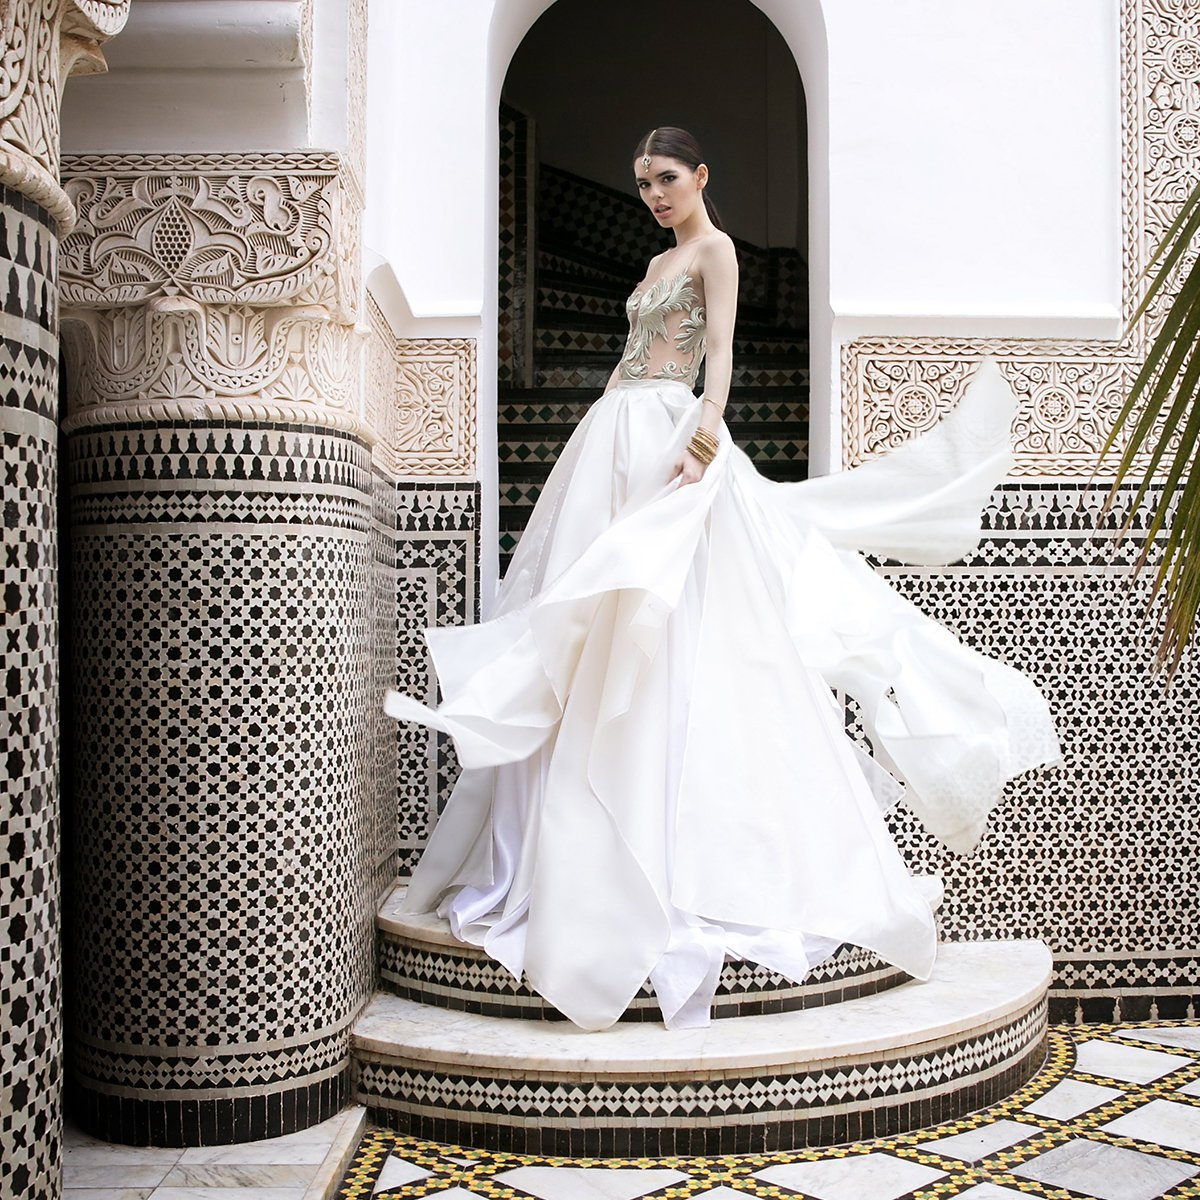 Moroccan Styled Shoot Collaboration - Flamboyant Invites